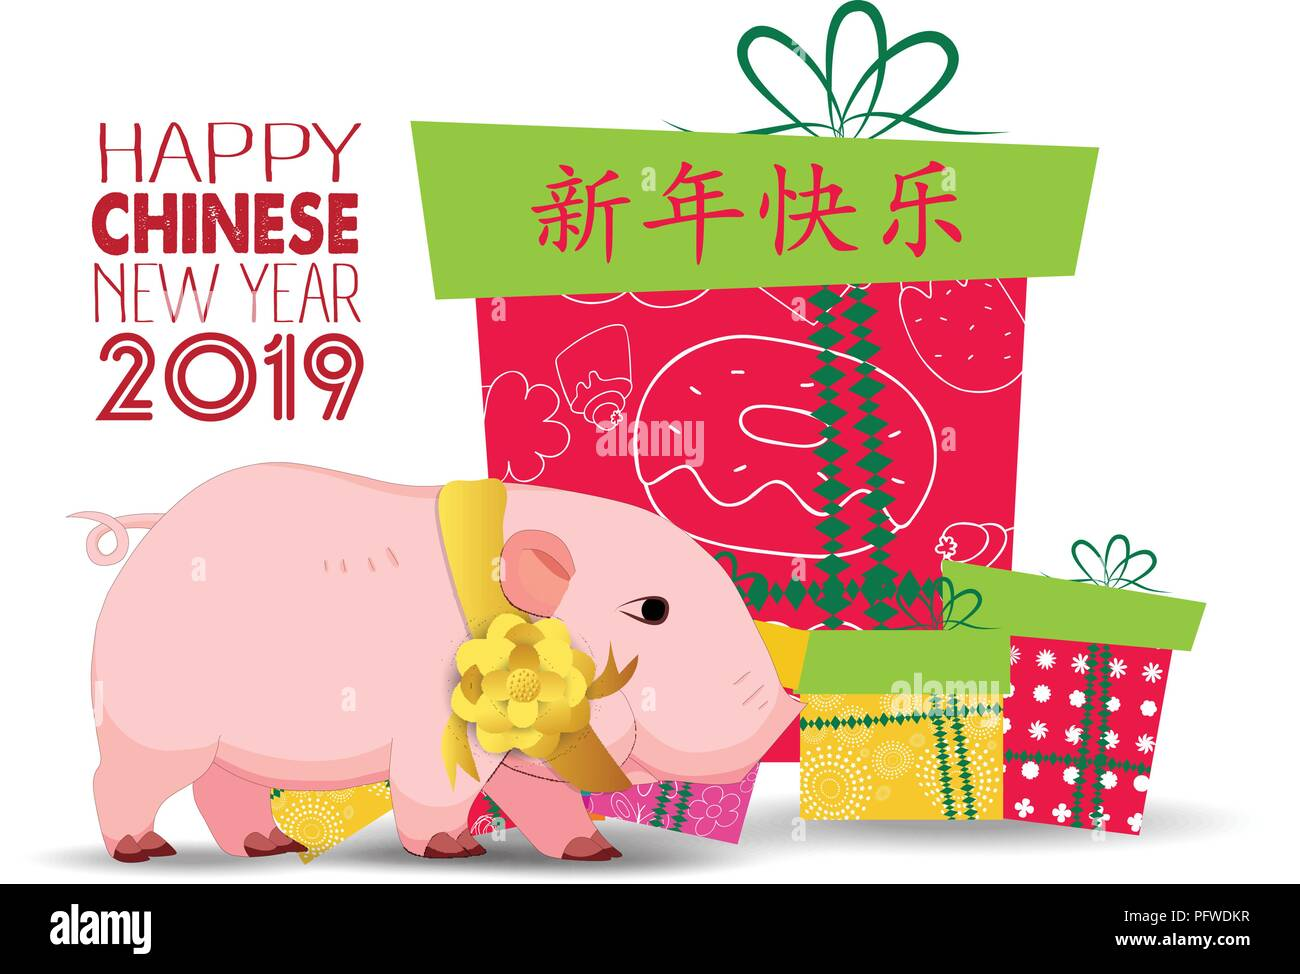 Happy Chinese New Year 2019, Jahr des Schweins mit cute cartoon ...